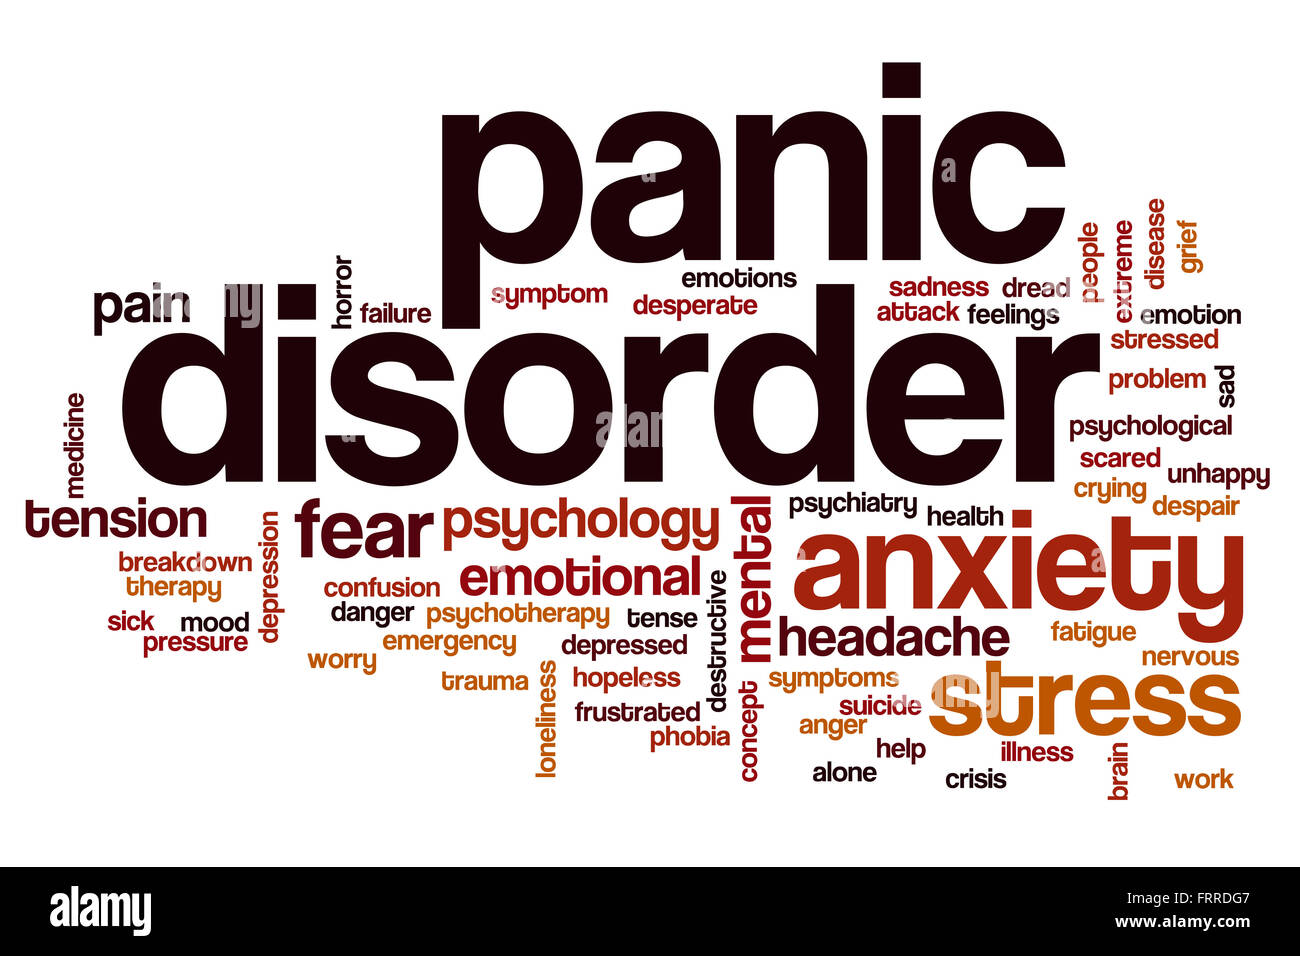 Panic Disorder Word Cloud Concept Stock Photo 100704471